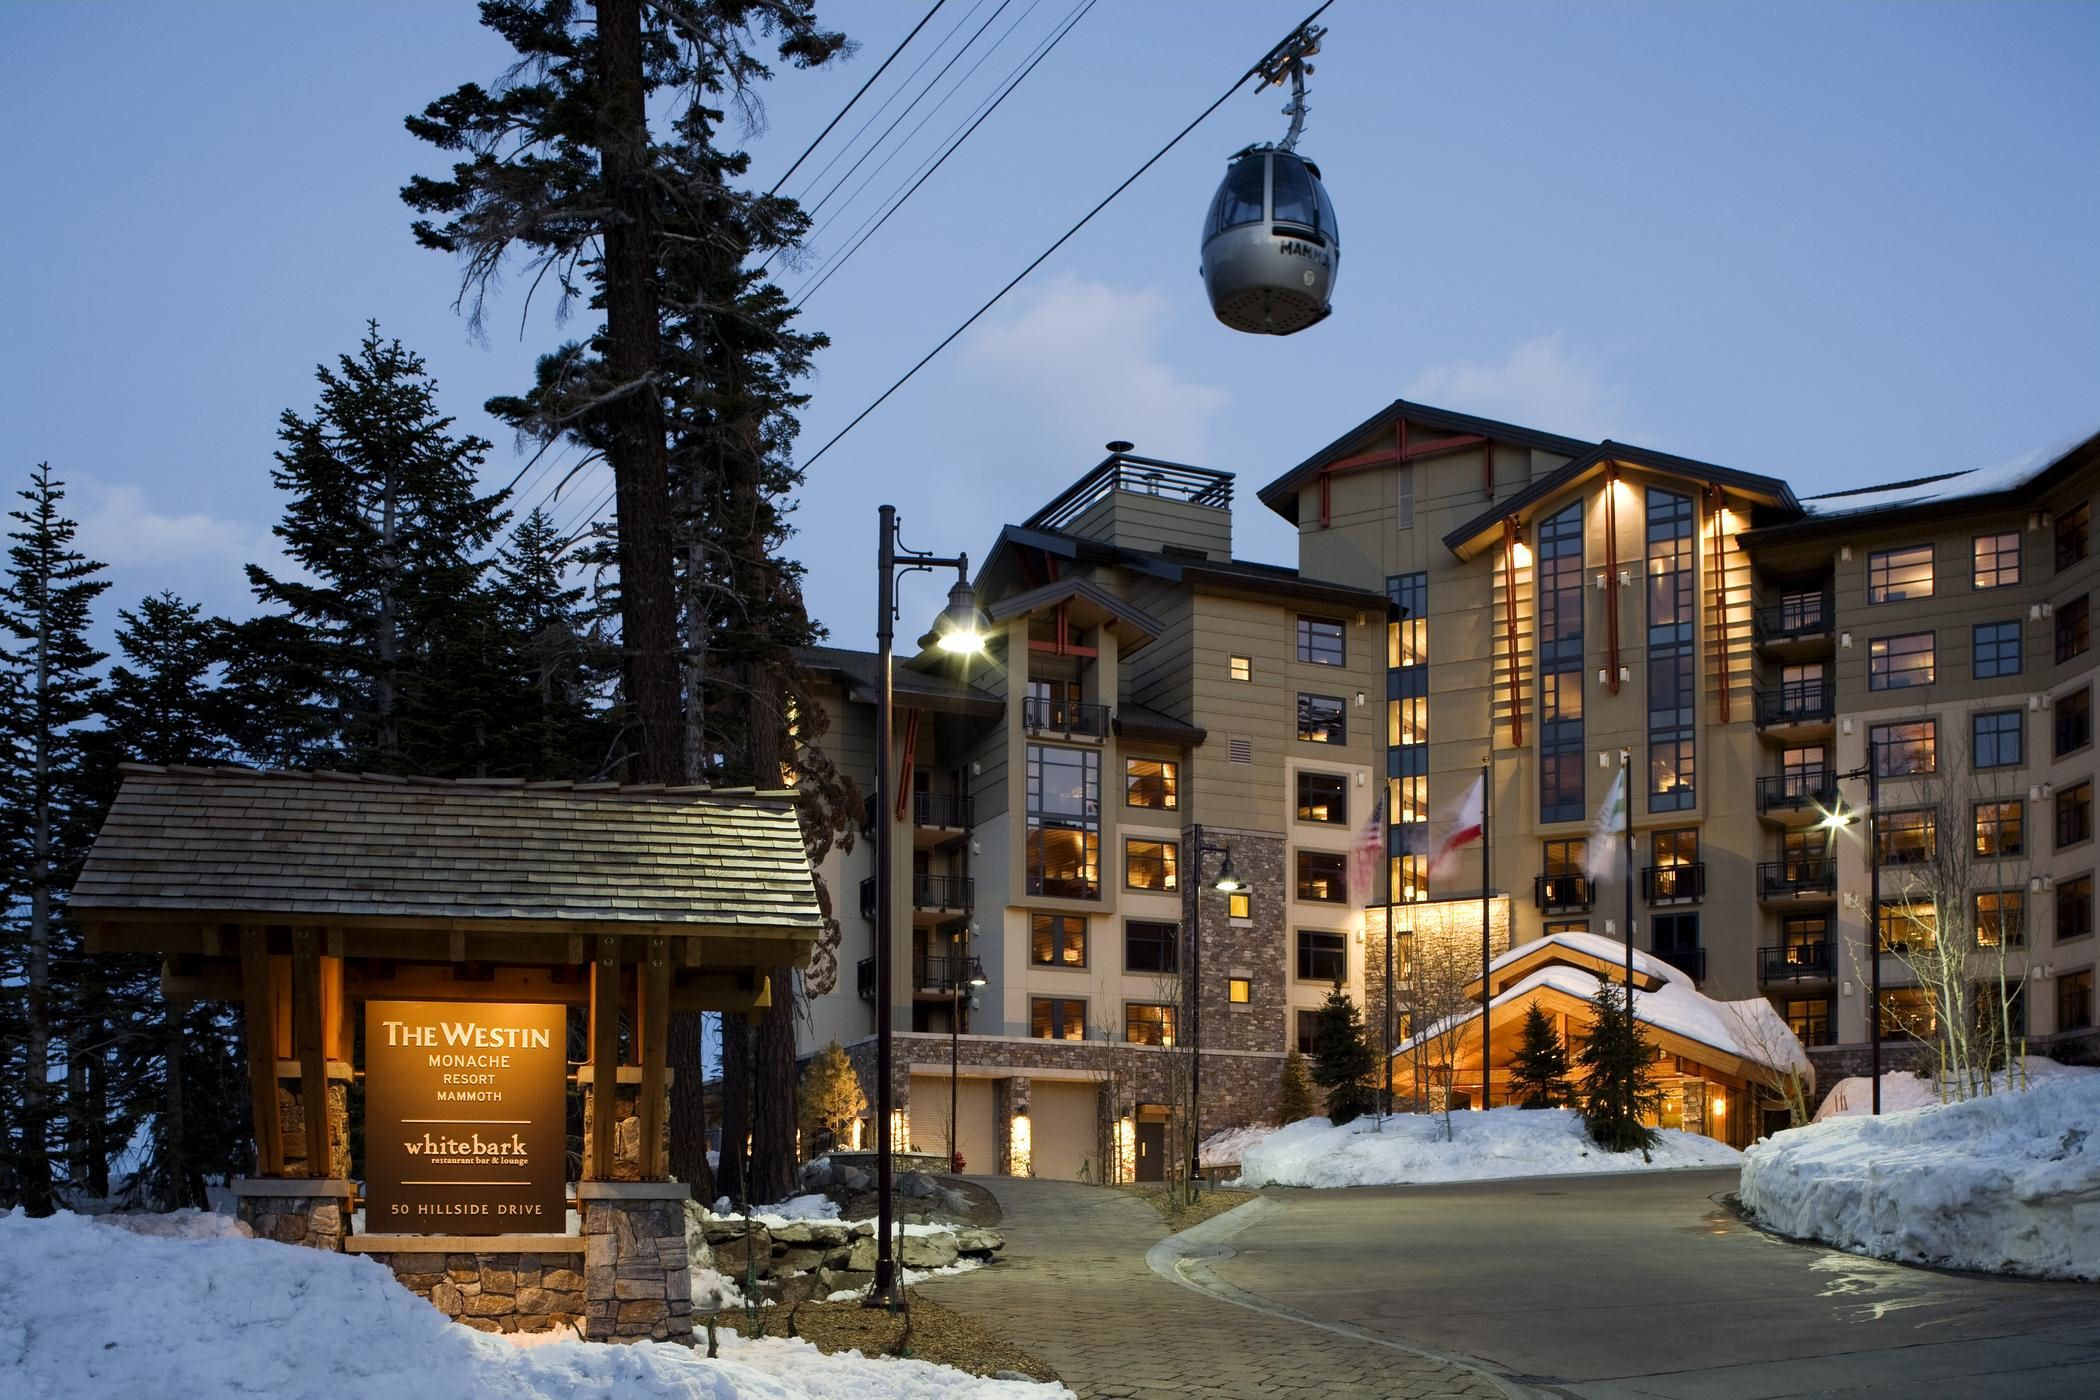 mammoth lakes, ca - skiing and snowboarding! such a fun place to go